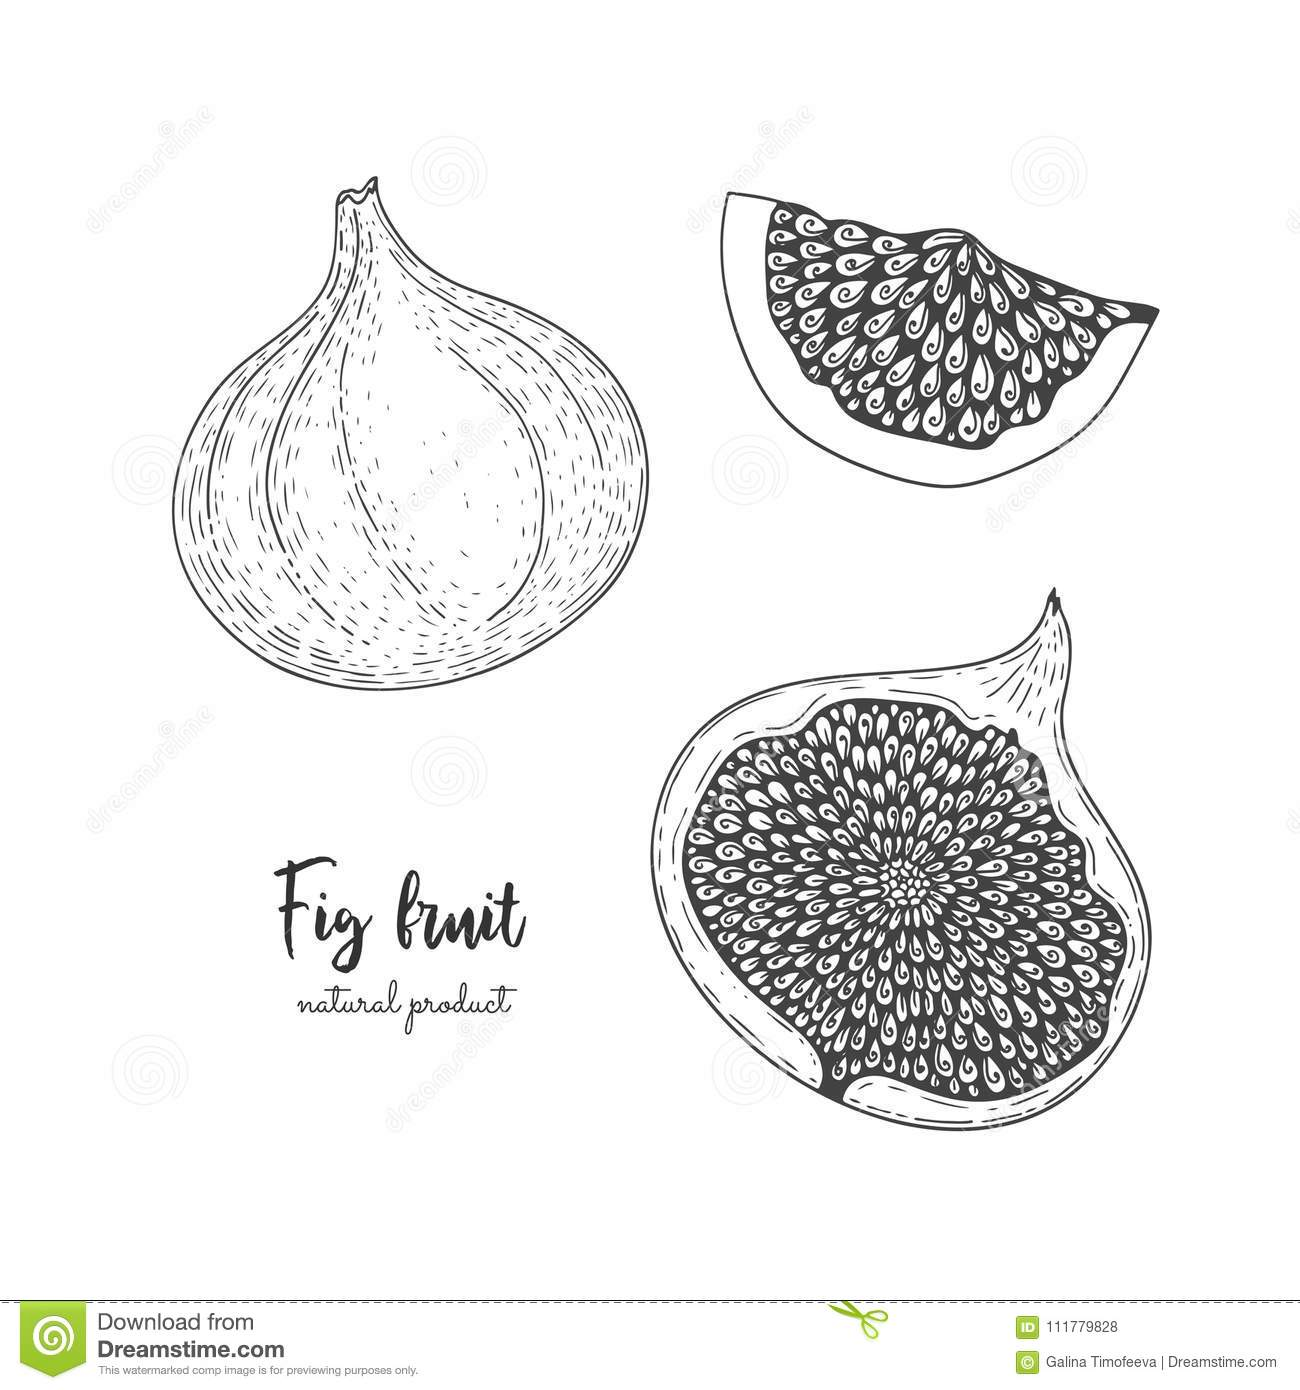 Fruit illustration with figs in the style of engraving. Detailed vegetarian food. Hand drawn elements for menu, greeting